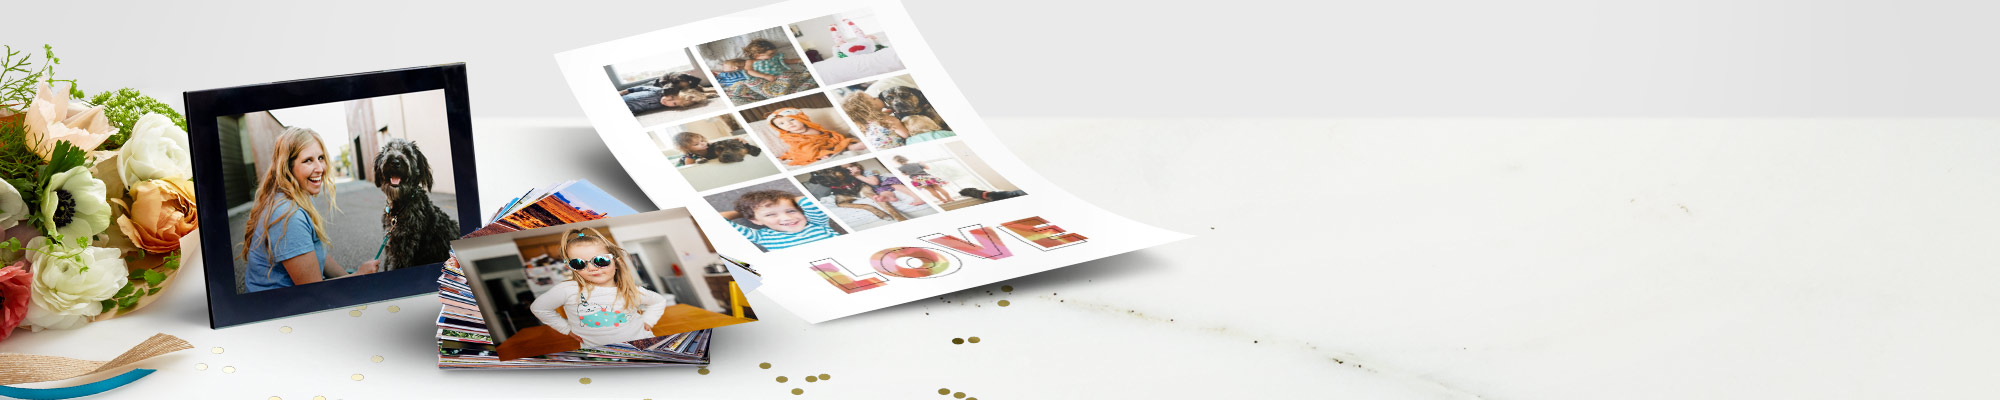 Photo Printing Great moments you can hold onto, literally. Share them, save them, and always cherish them.